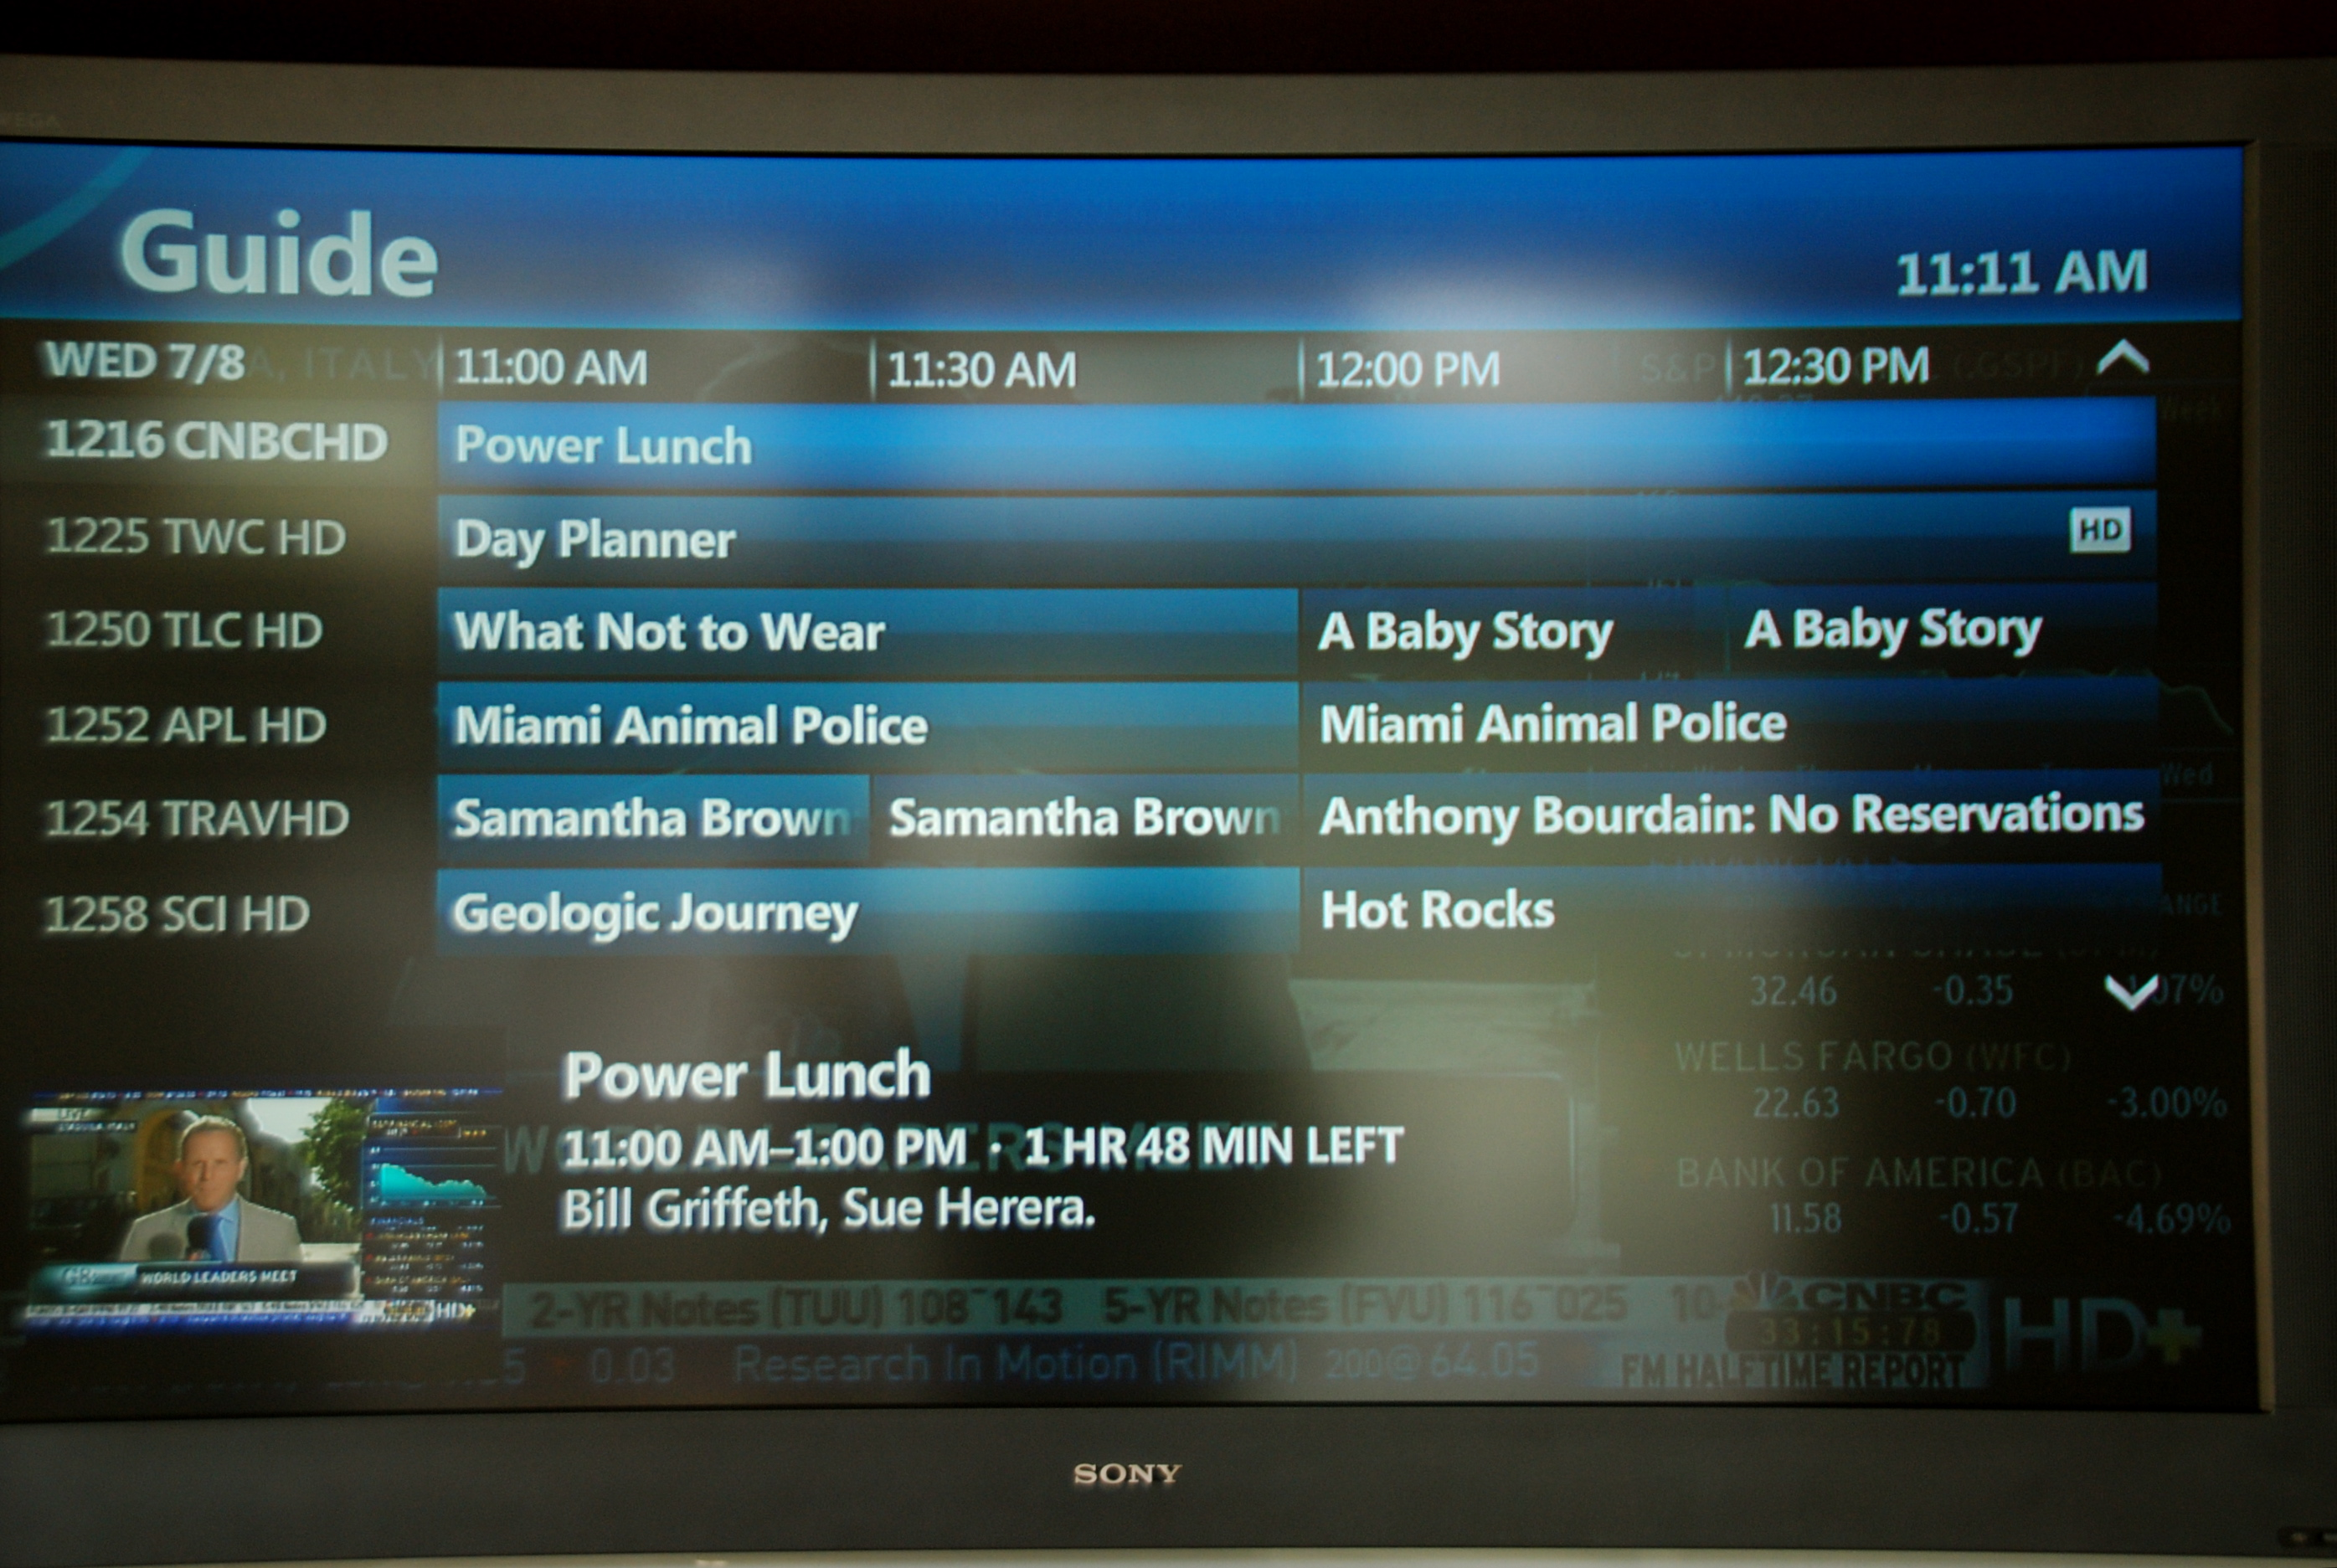 What channel is the - The Biggest News Was The Software Update That Allows My Family To Enjoy New Total Home Dvr Capabilities And Navigation Enhancements Plus A New And Visually